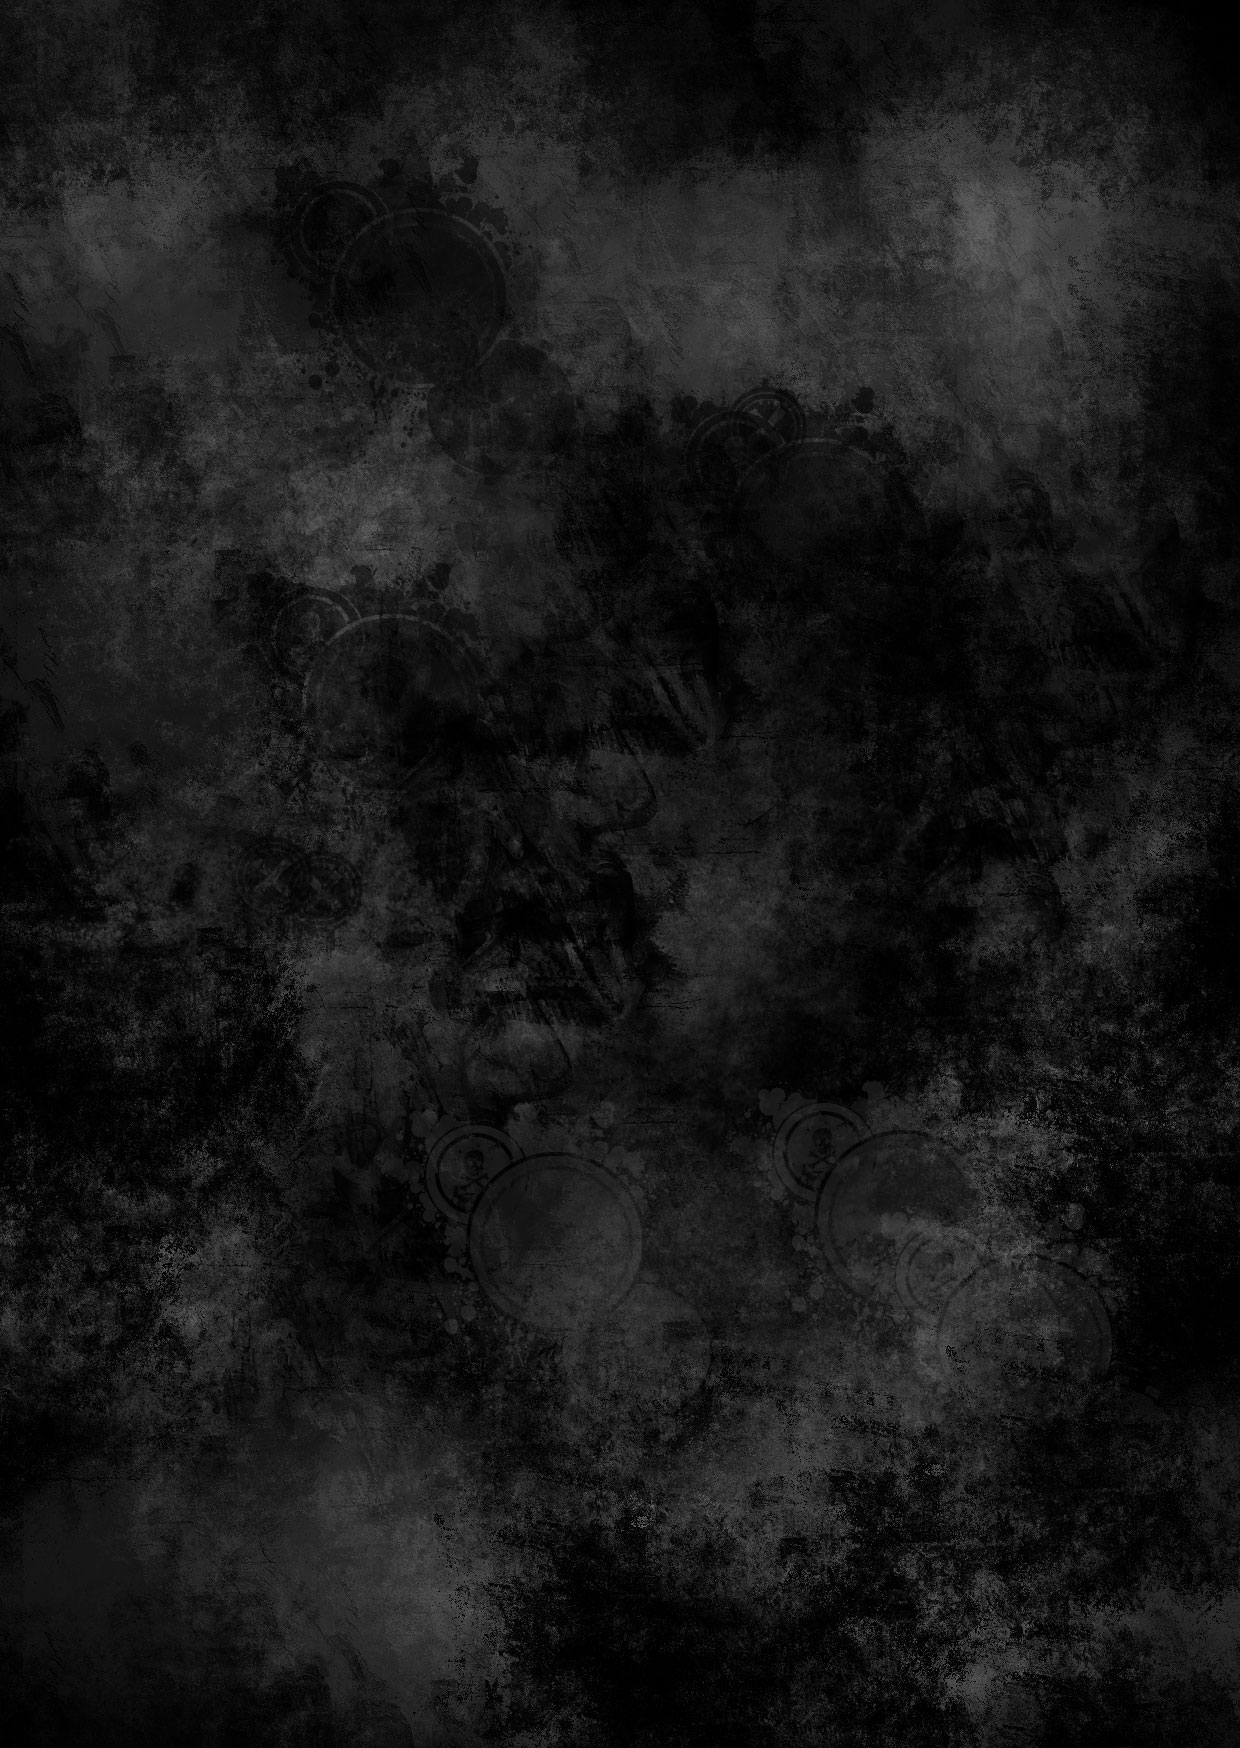 Background for images in photoshop - Flyer Backgrounds Photoshop